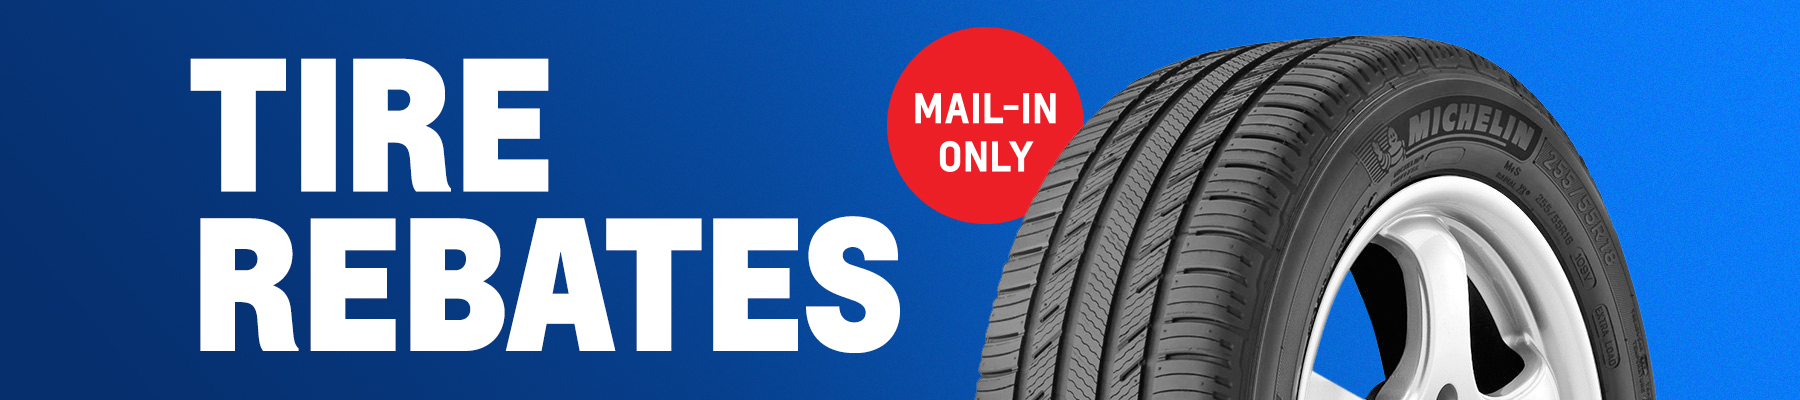 mail-in tire rebates